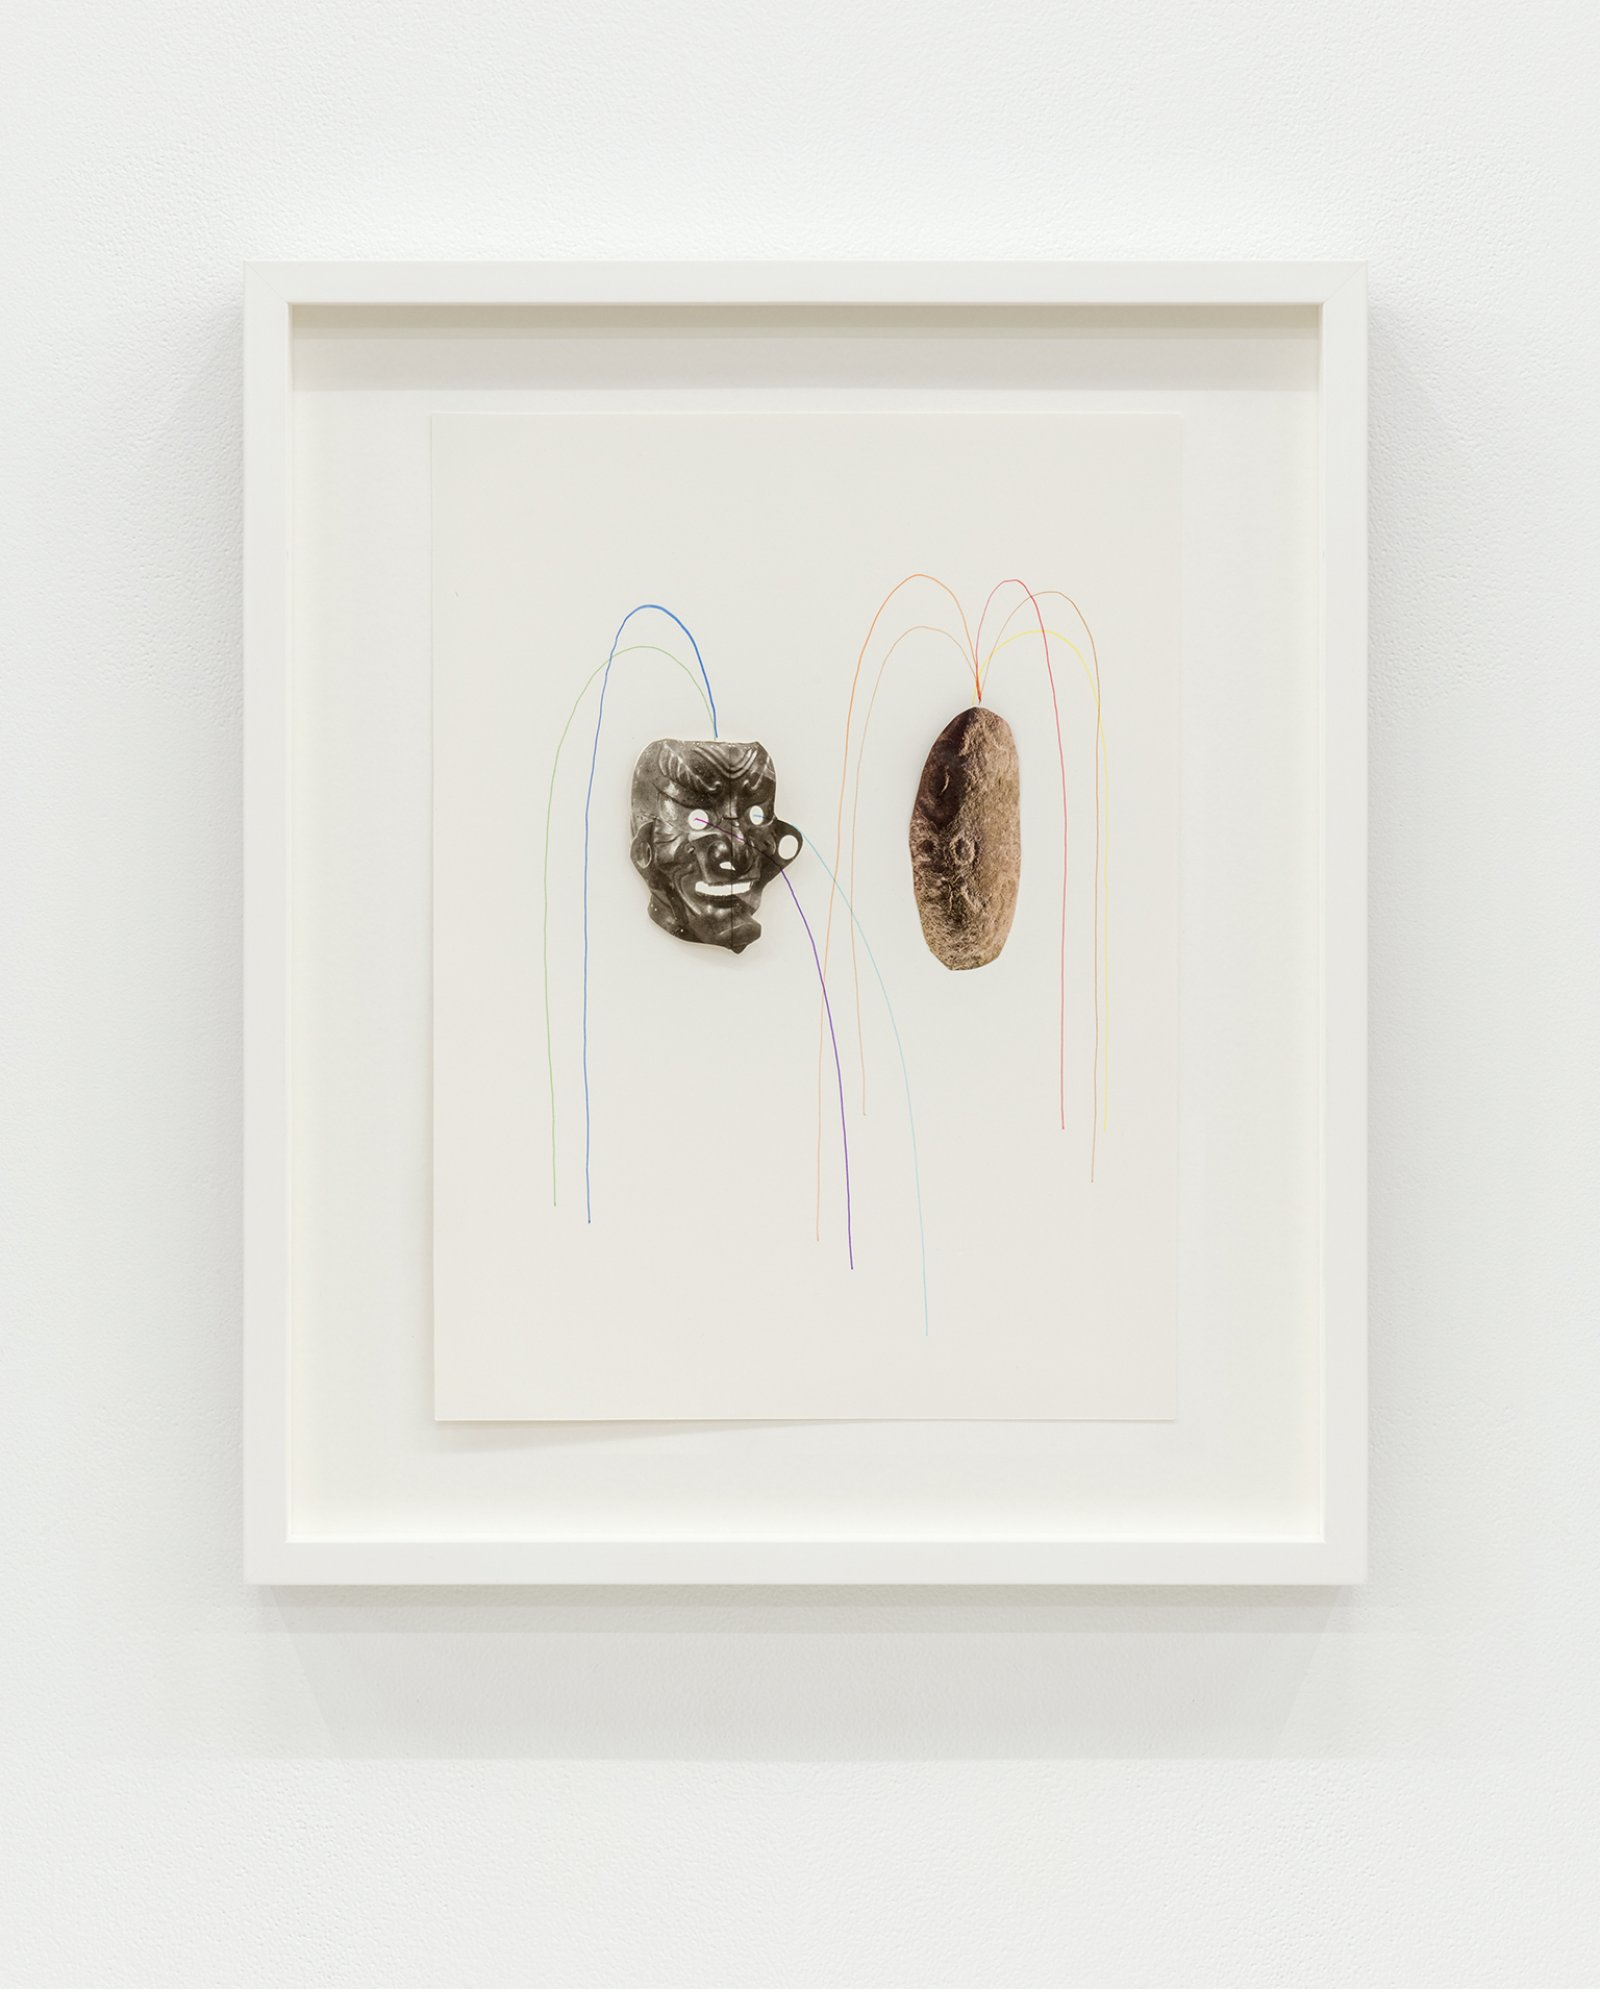 Geoffrey Farmer,Looking at a photograph of myself and realizing I had a potato instead of a head (Fountain)(detail), 2014, vitrine with cut-outs mounted on 5 vertical clay slabs, 4 wooden wall brick façades, paint, sandbags, framed cut-outs and ink mounted on paper, dimensions variable